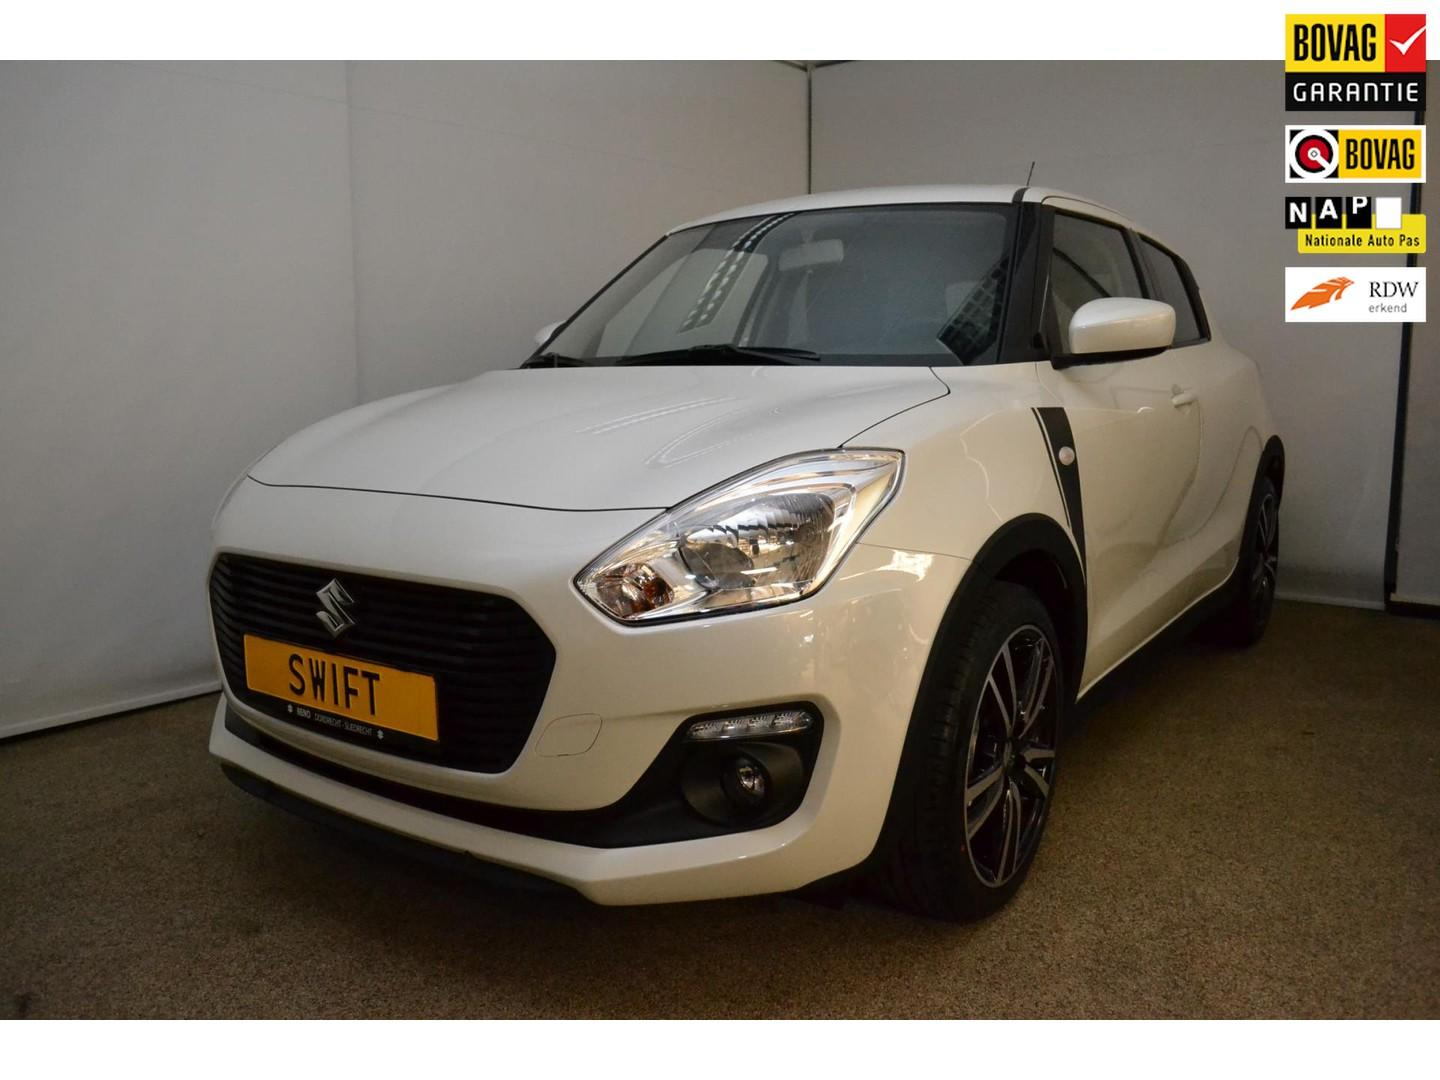 Suzuki Swift 1.2 select smart hybrid sportline